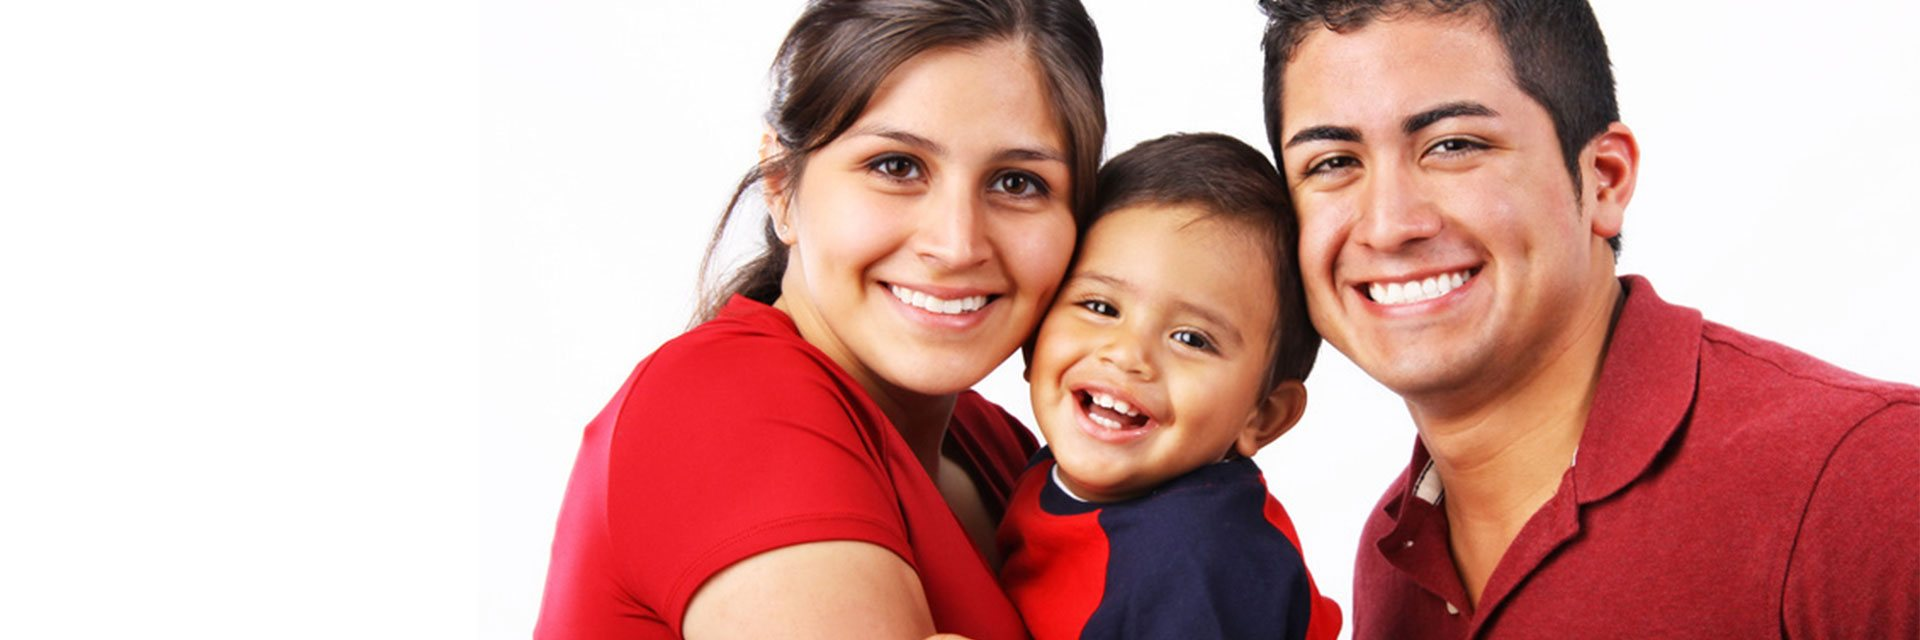 banner happy family with baby smiling discover dental